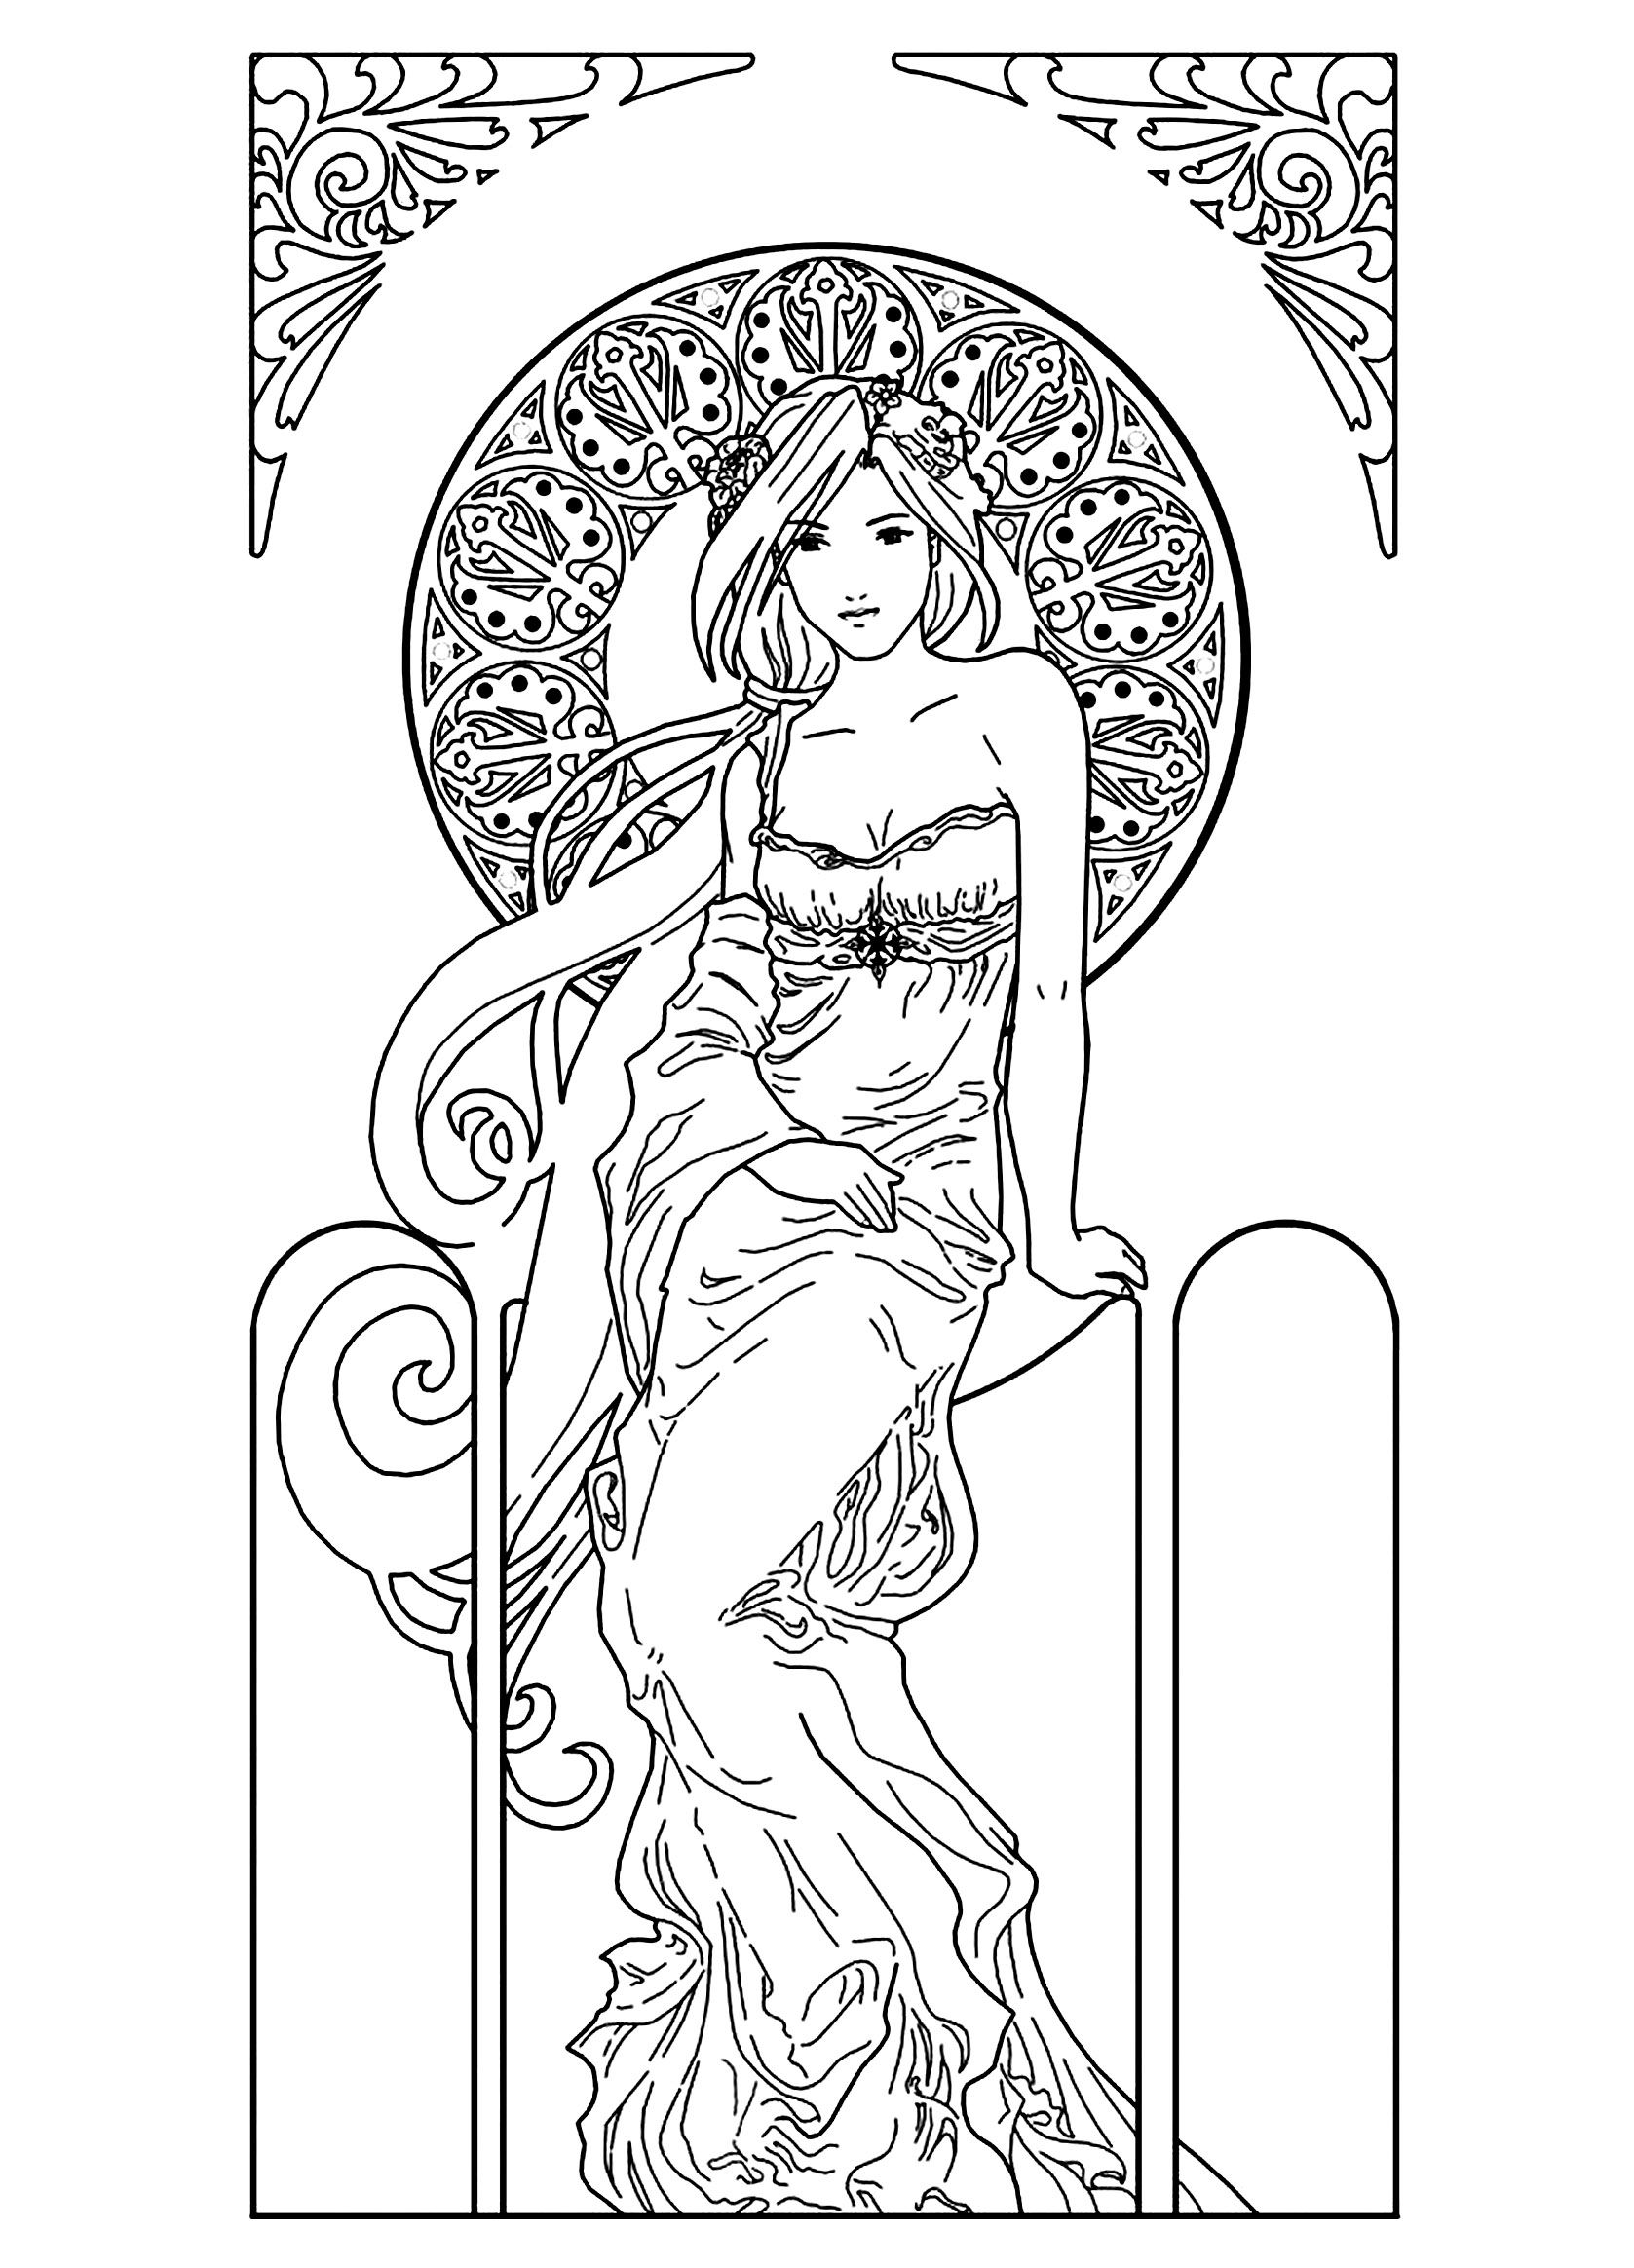 Drawing Of A Woman Art Nouveau Style From The Gallery Art